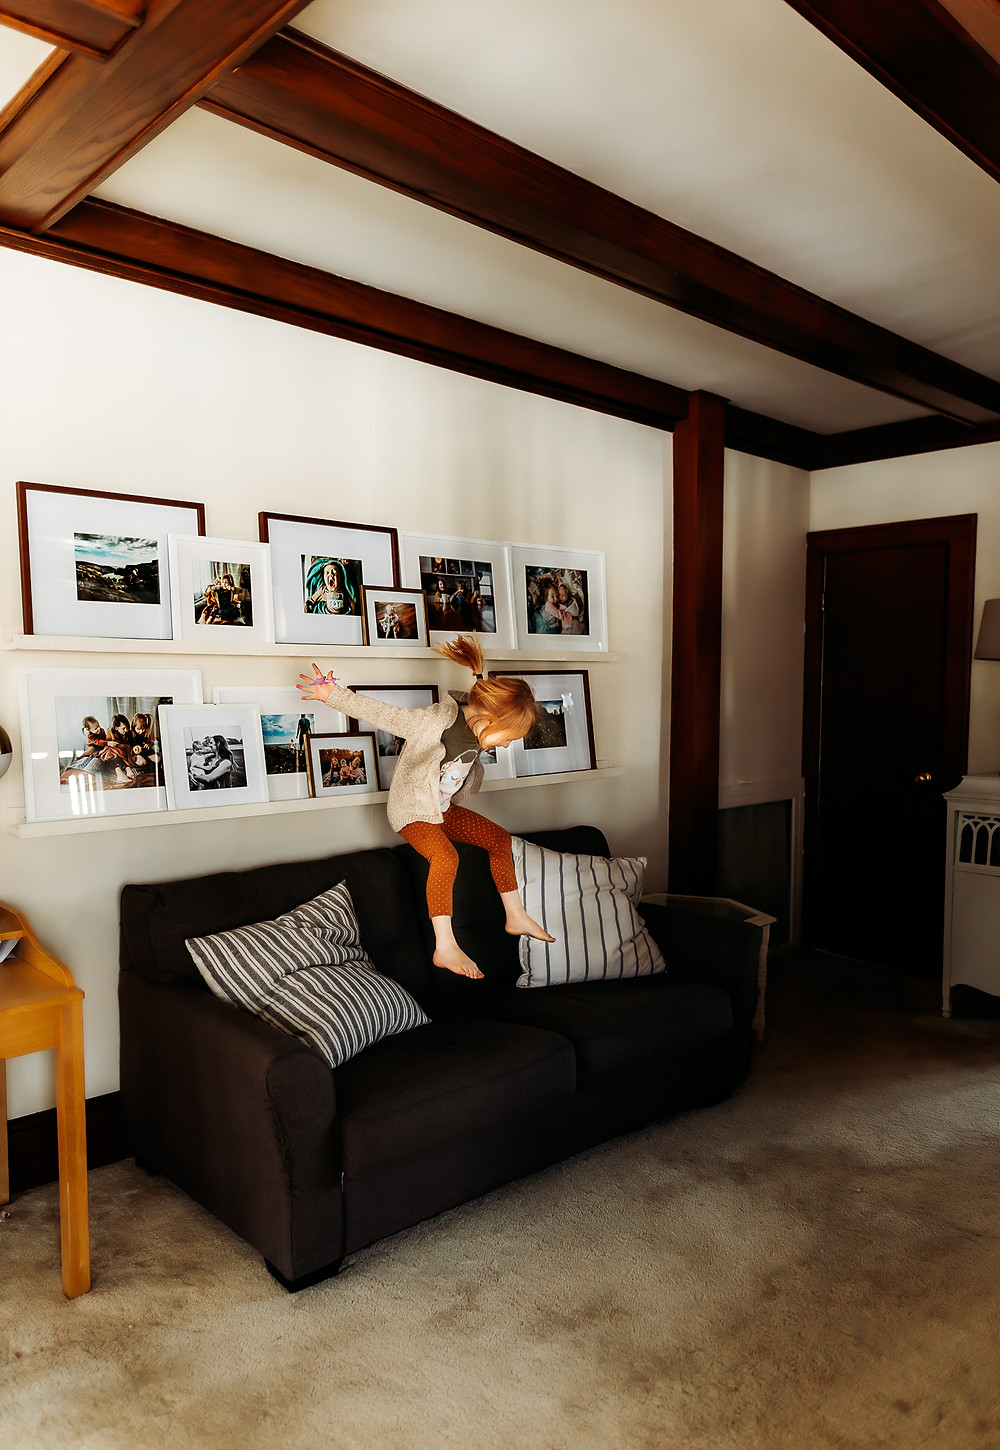 Little girl jumping on couch in front of gallery wall display